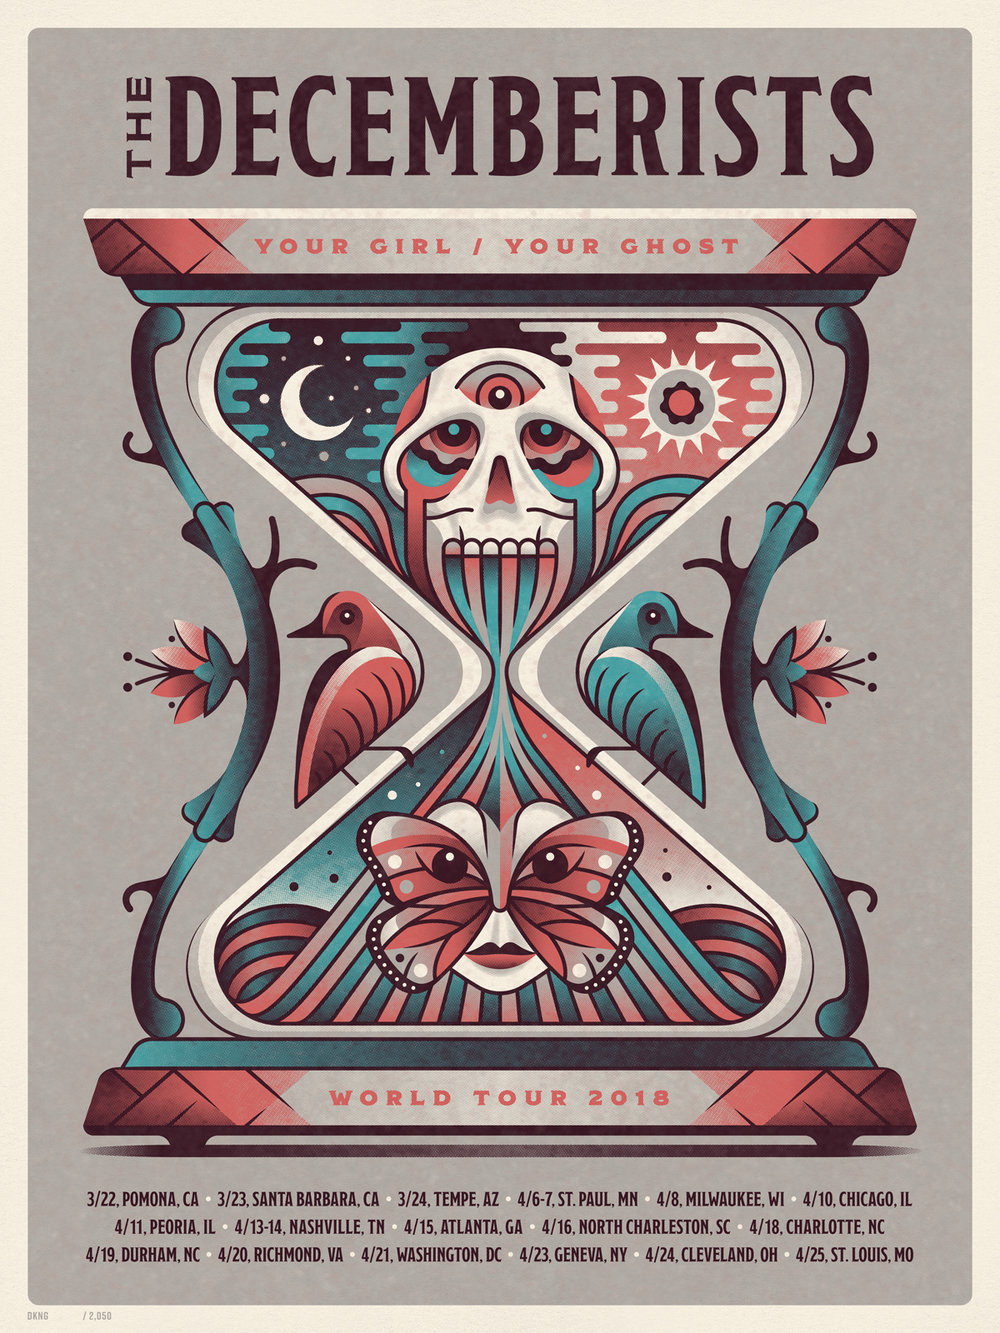 The Decemberists 2018 Tour Poster by DKNG